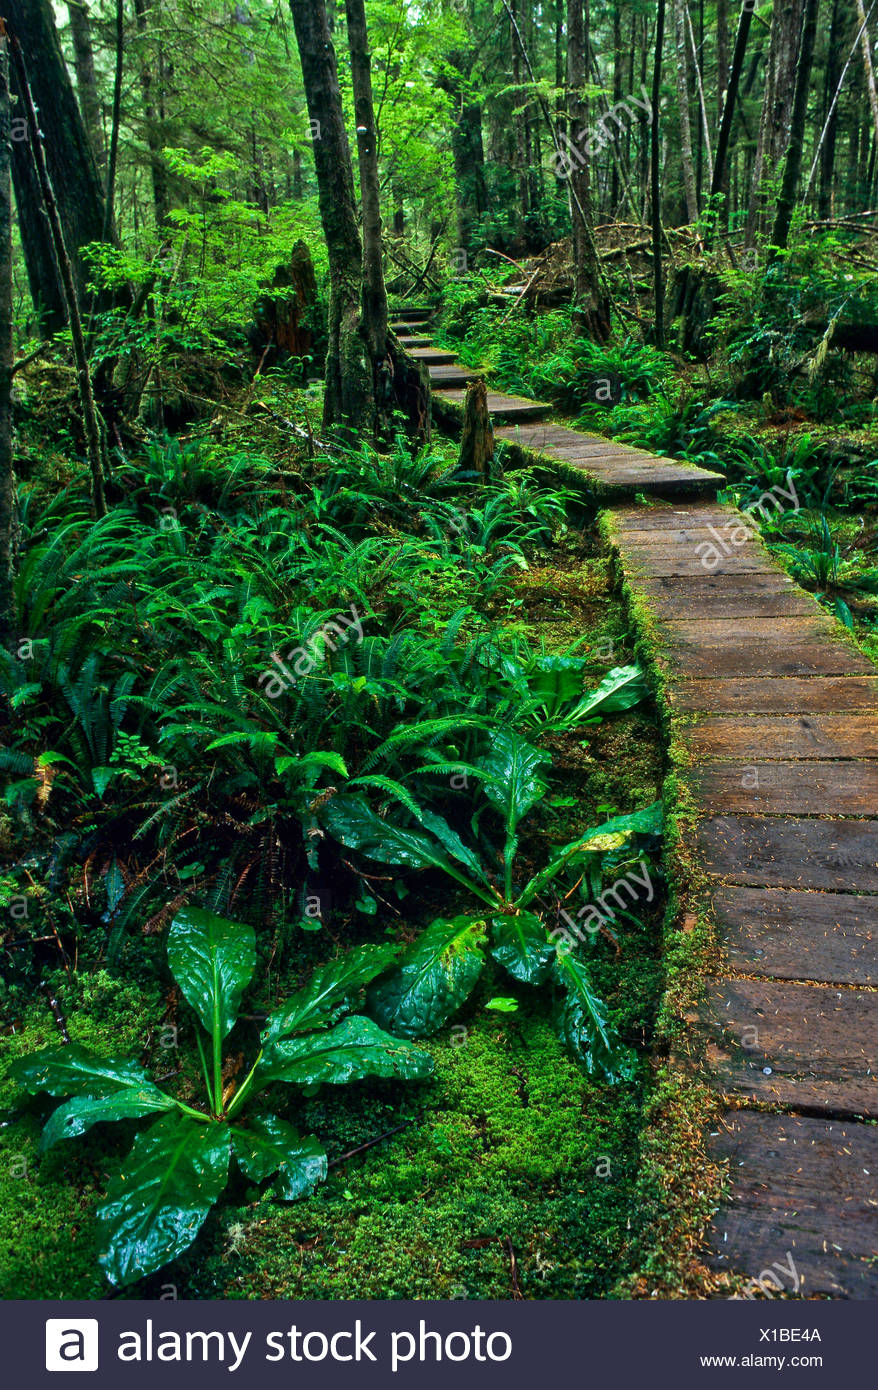 Wooden boardwalk going through temperate rainforest, Olympic National Park, Washington, USA Stock Photo